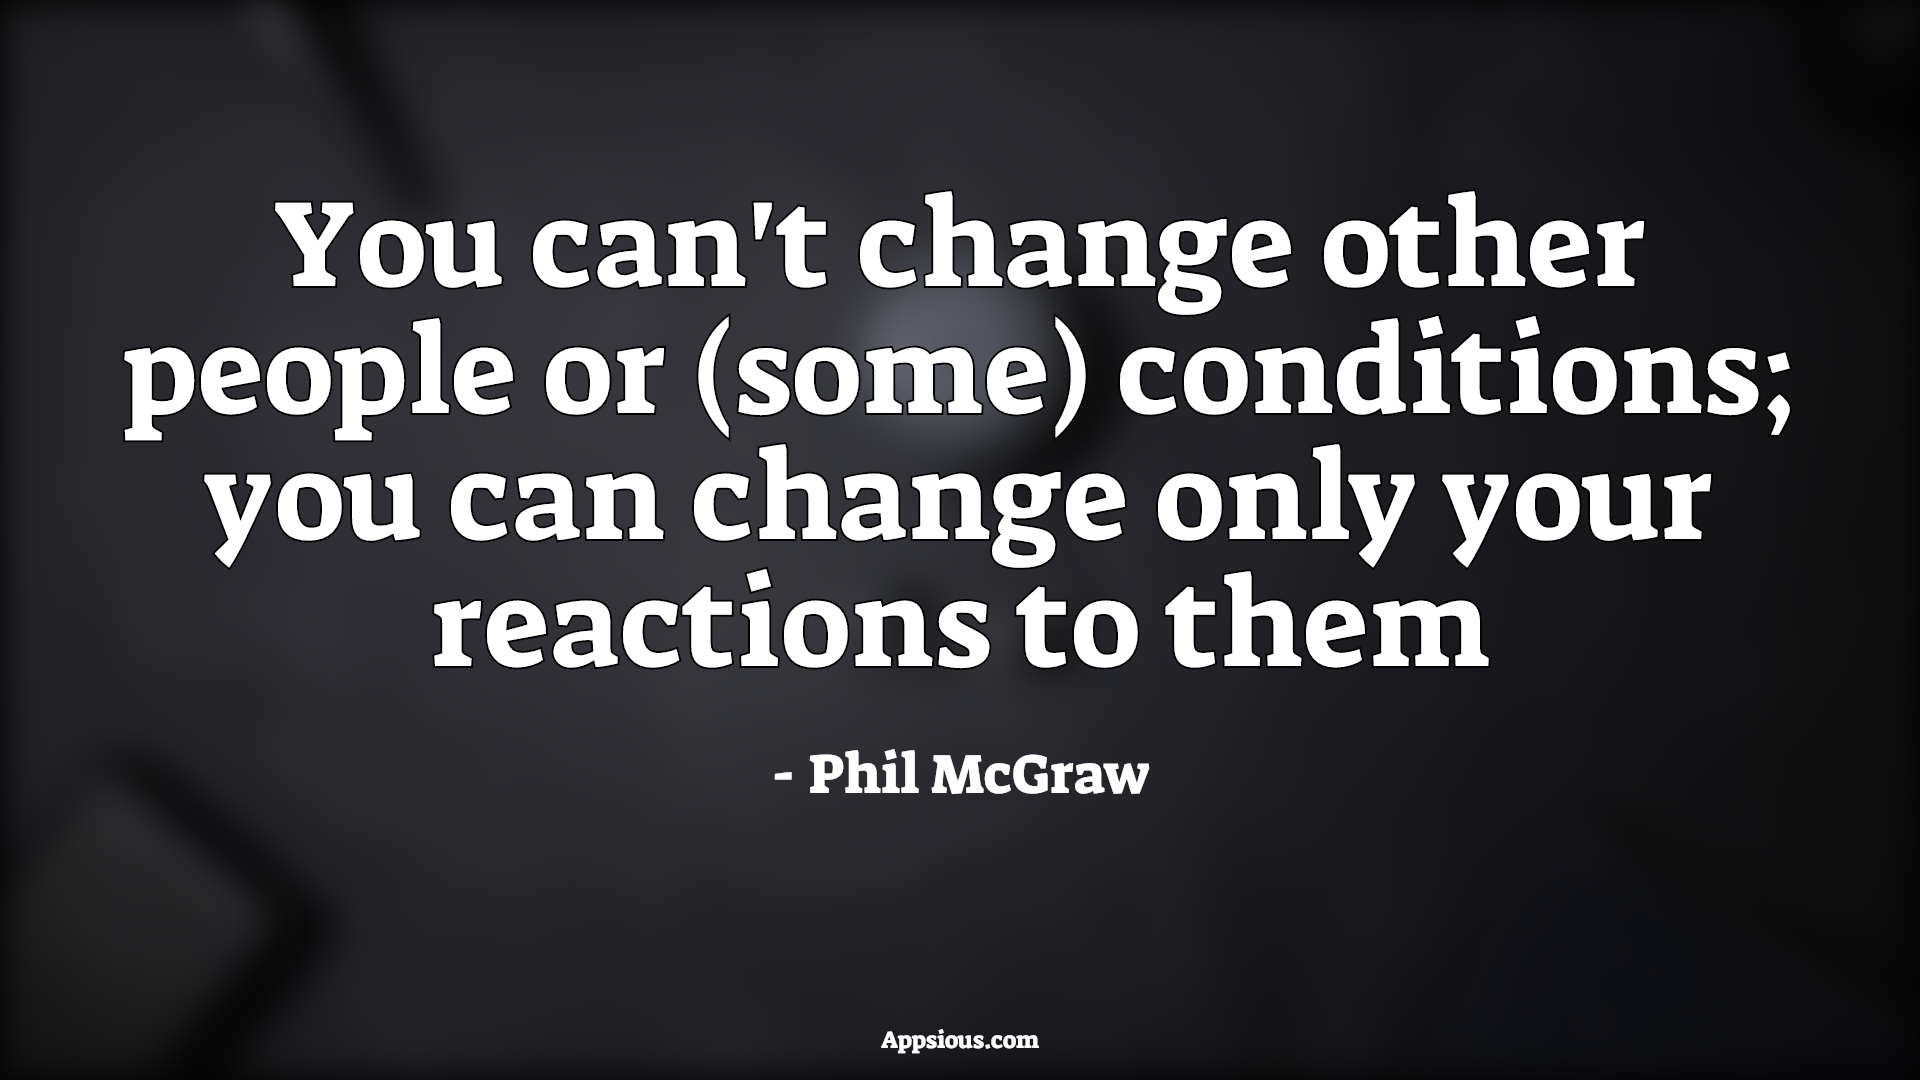 You can't change other people or (some) conditions; you can change only your reactions to them